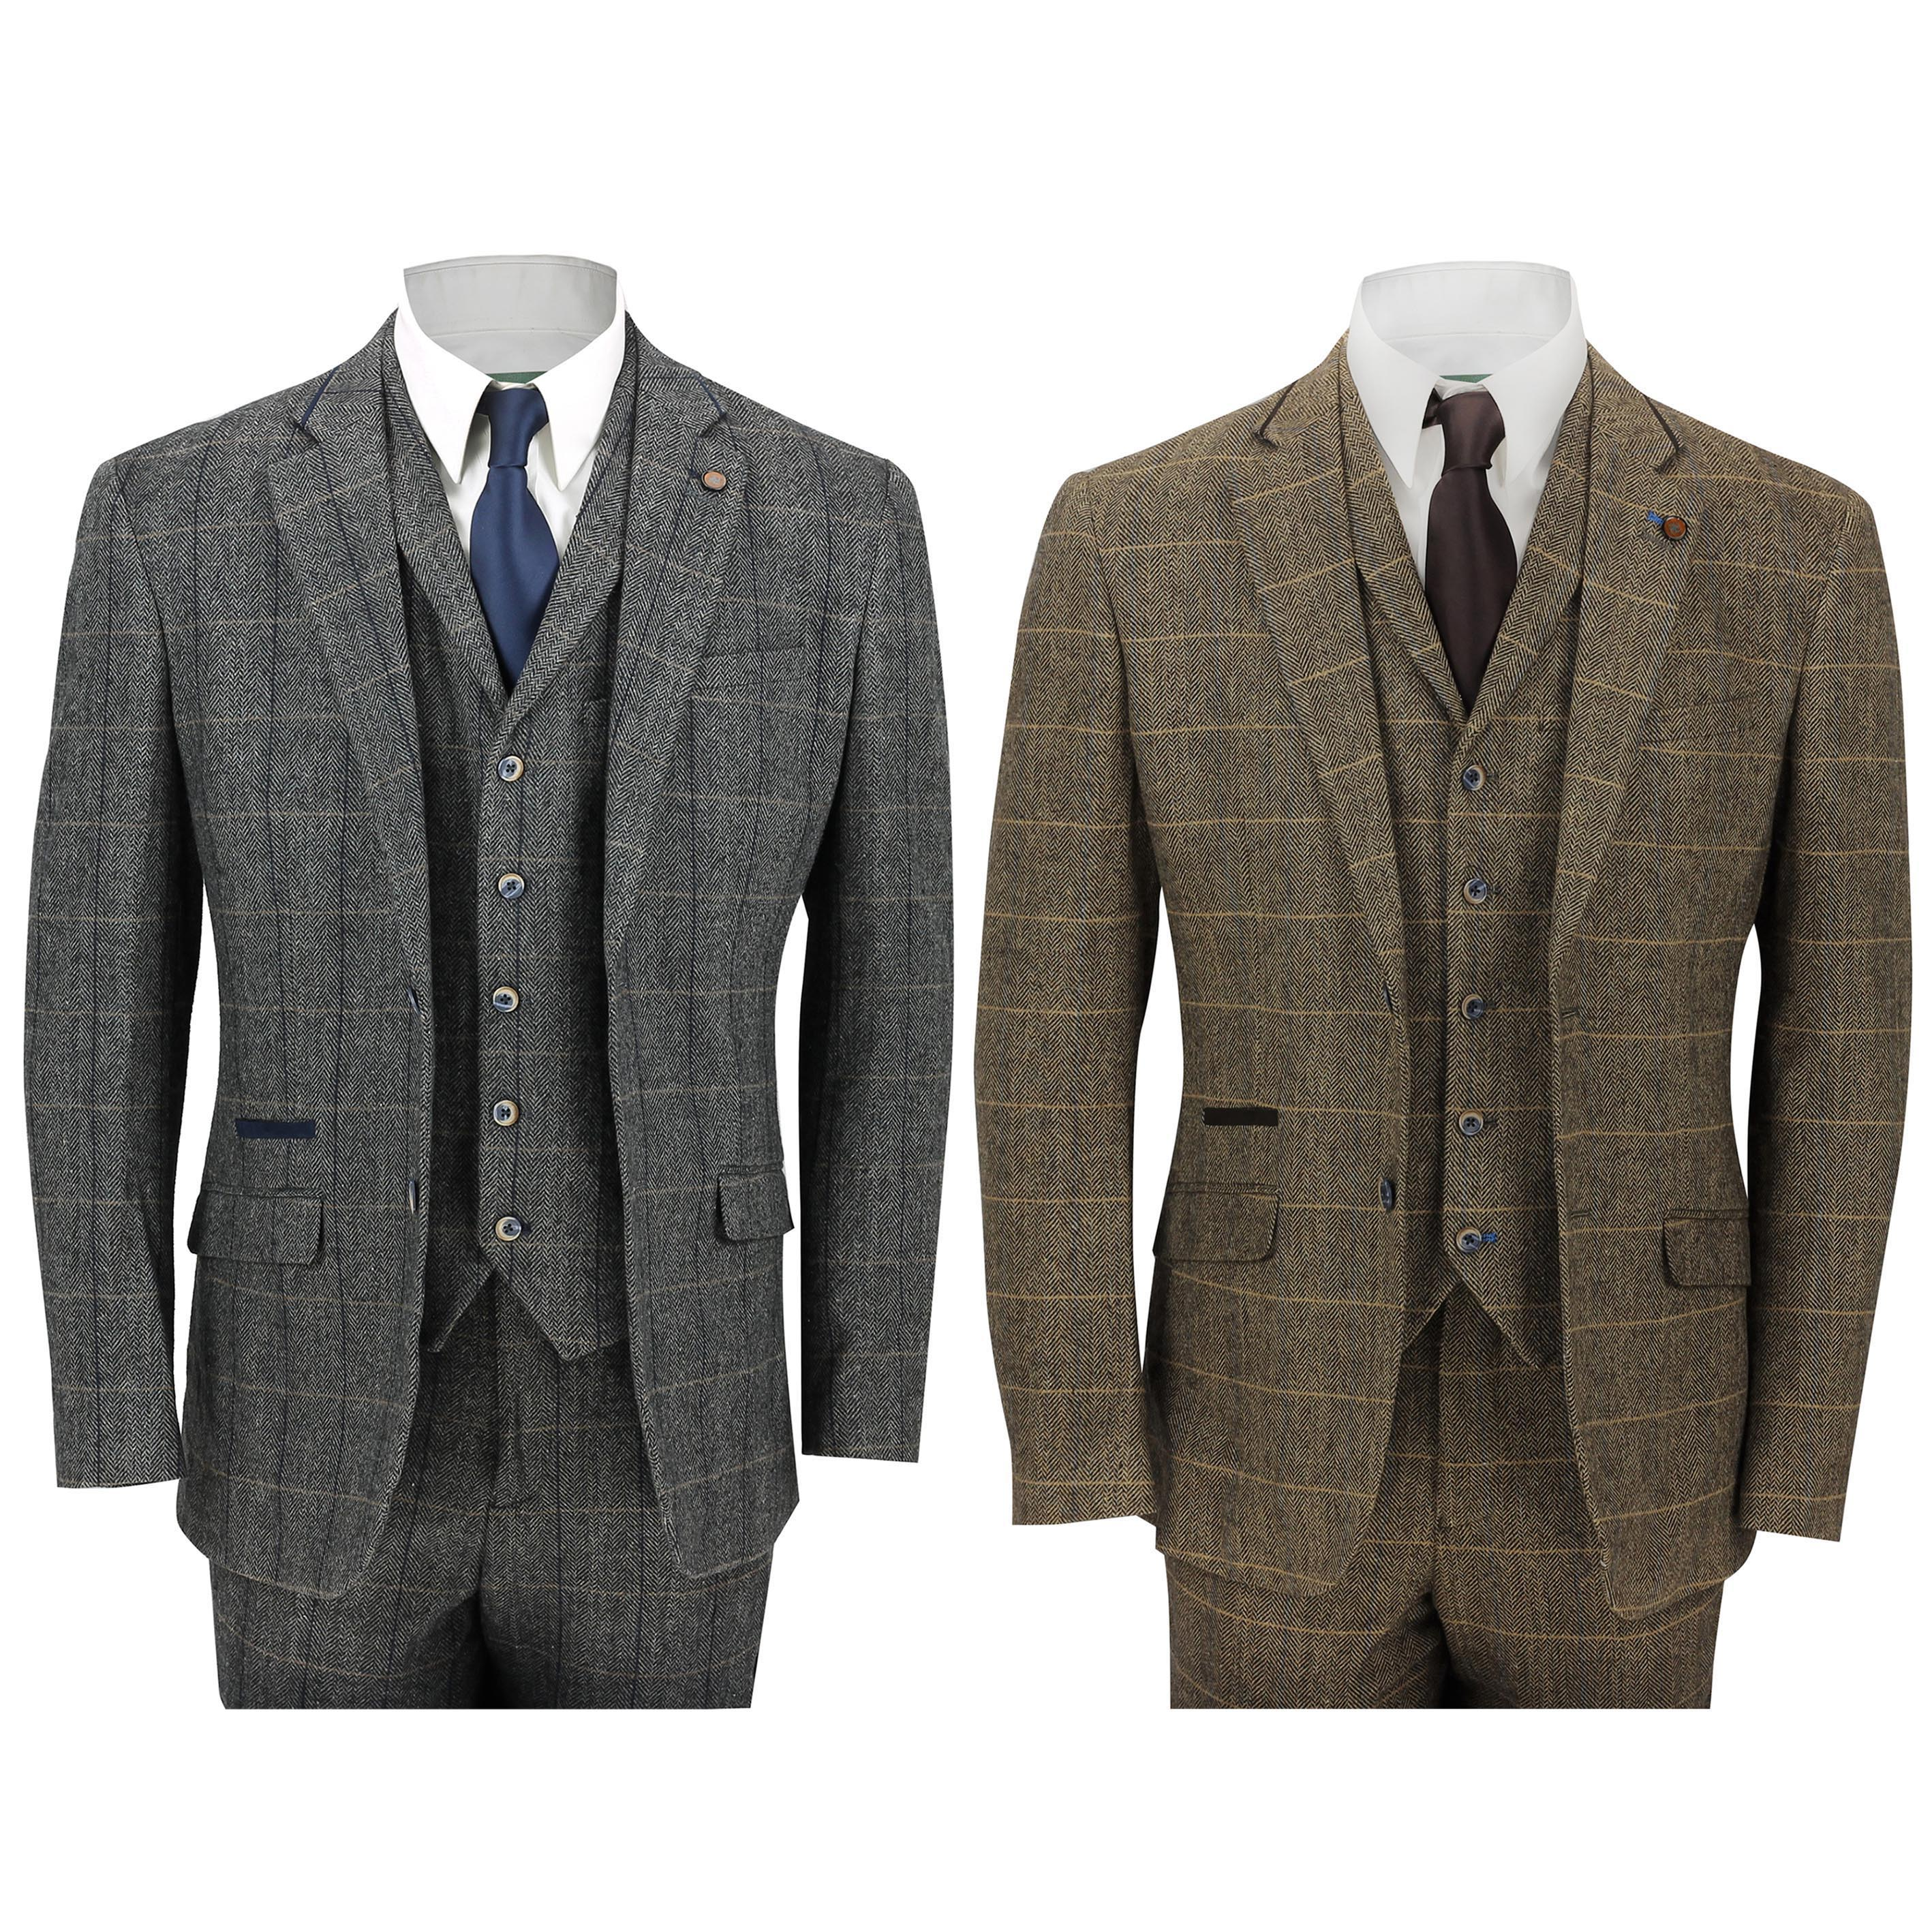 moderate price recognized brands fresh styles Details about Mens 3 Piece Tweed Suit Vintage Herringbone Check Retro Slim  Fit Tan Brown, Grey